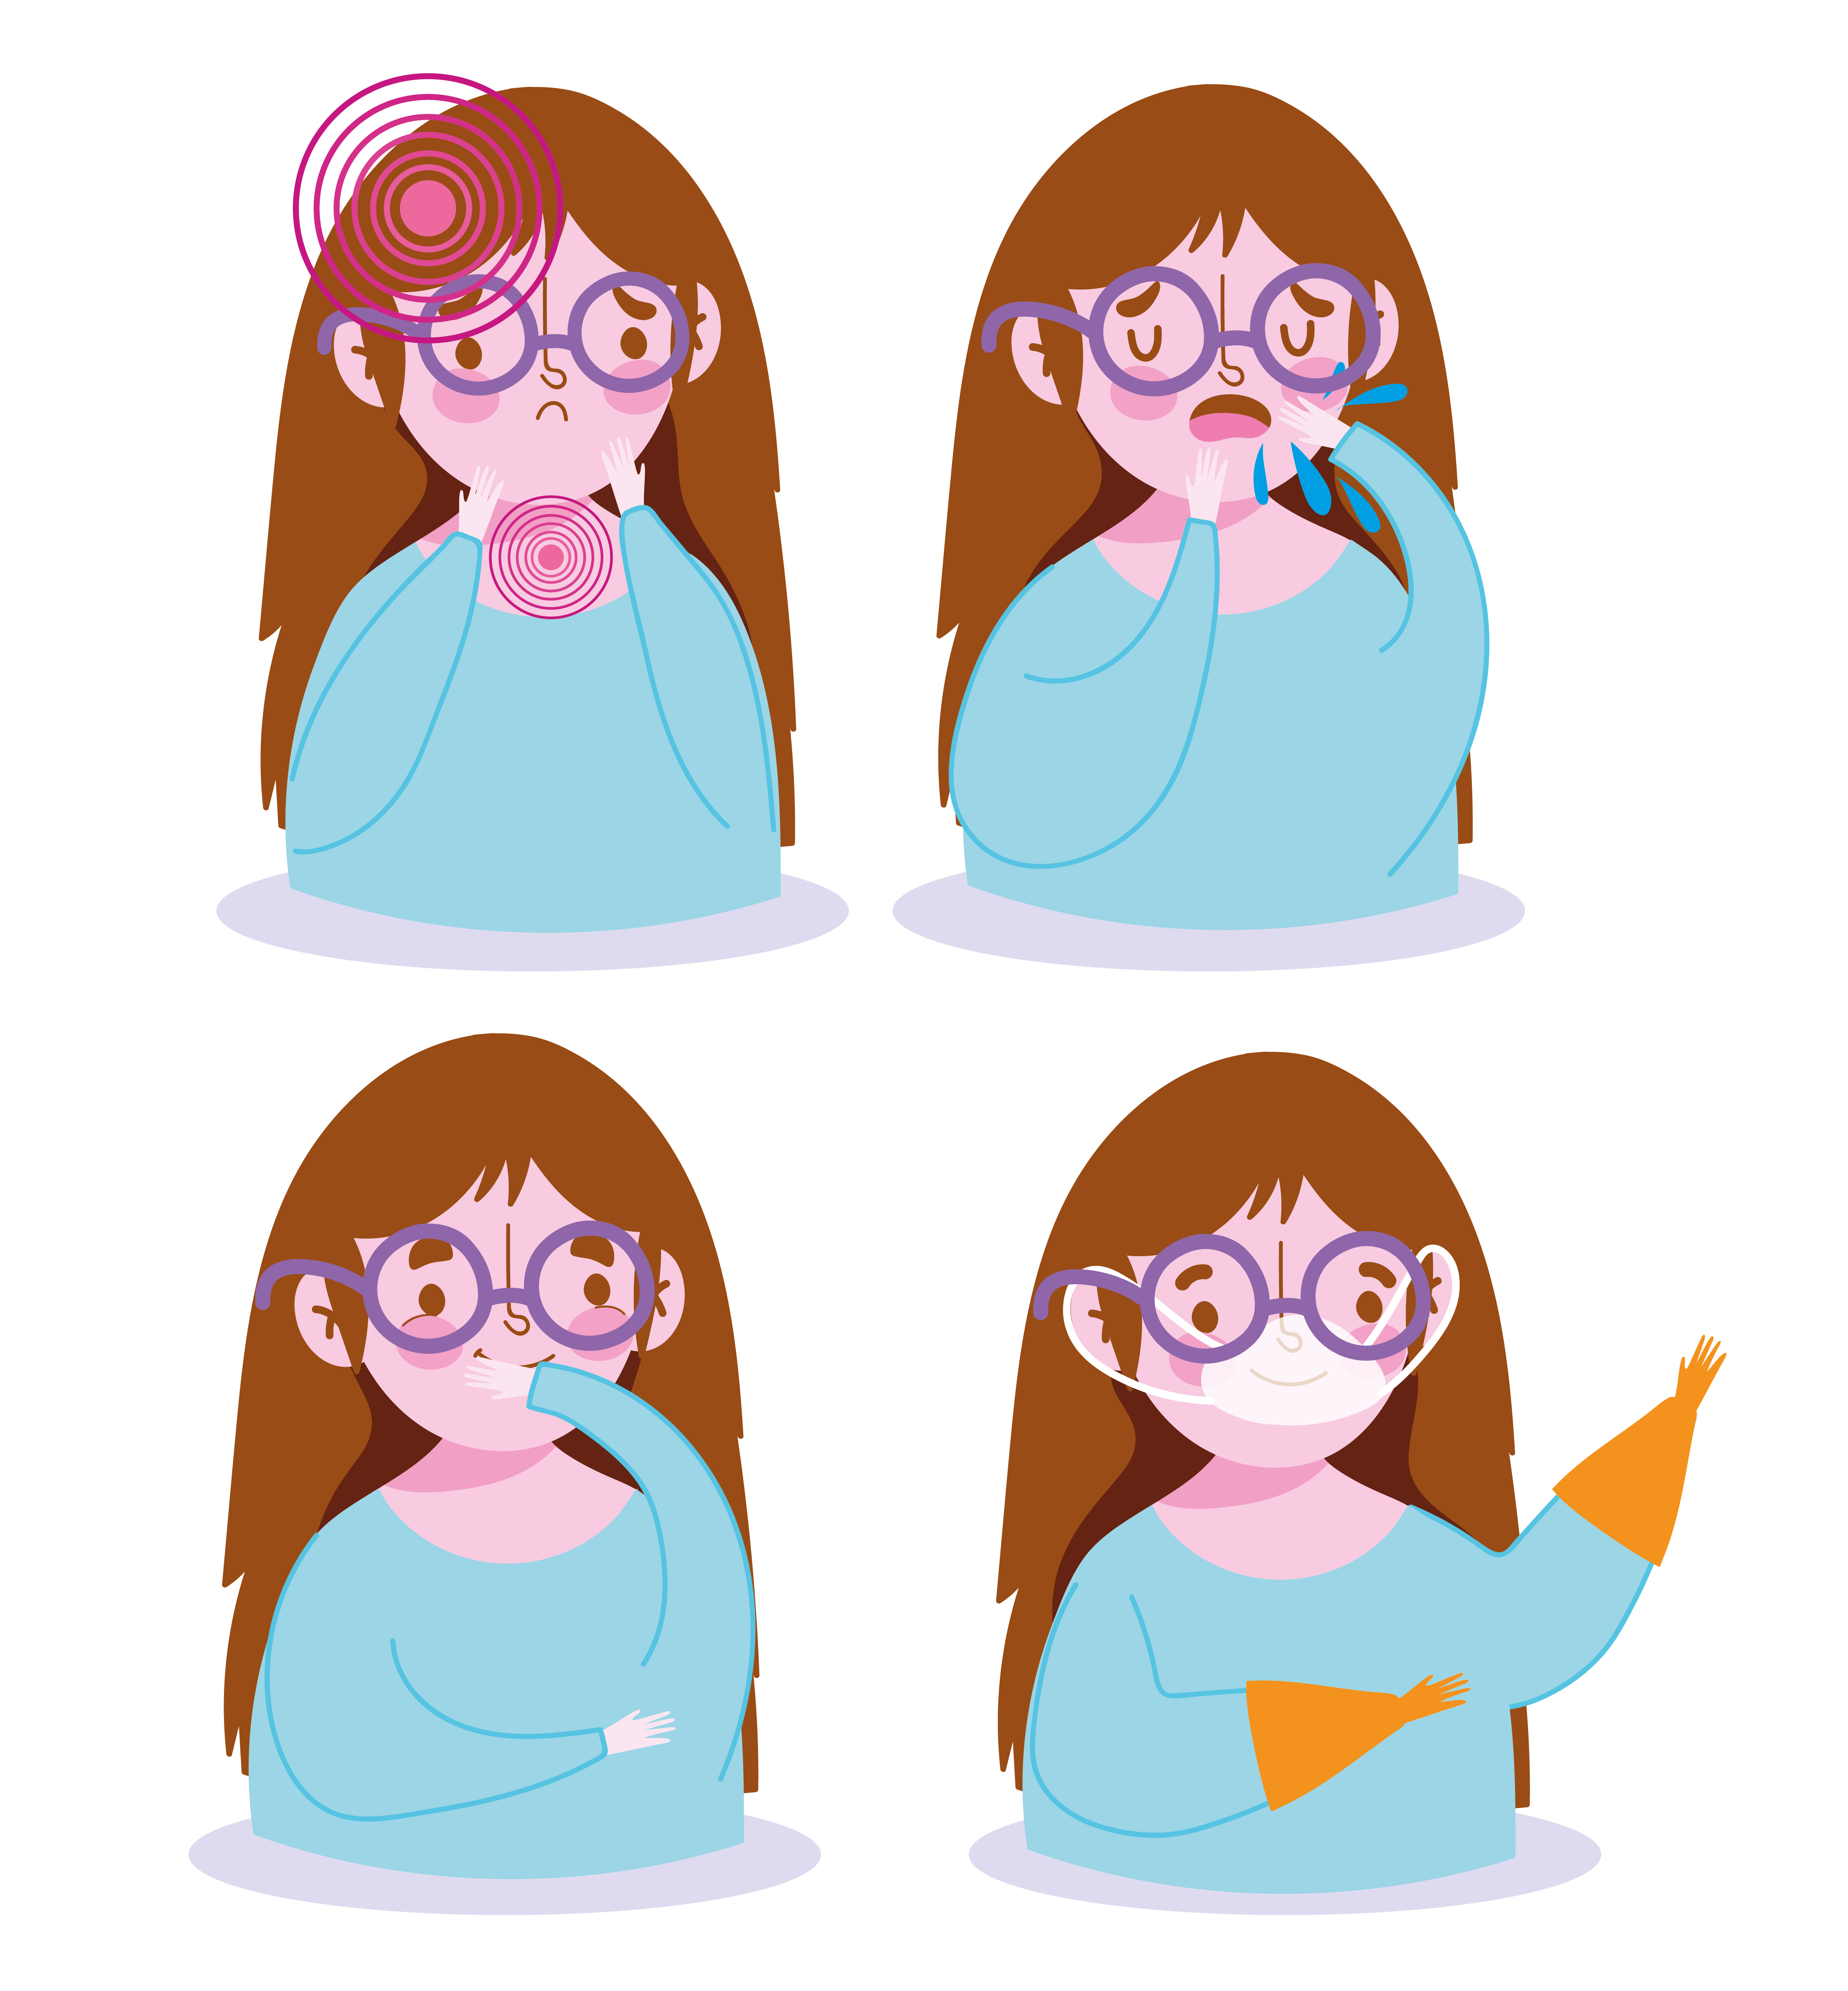 Girl with disease symptoms and prevention icon set